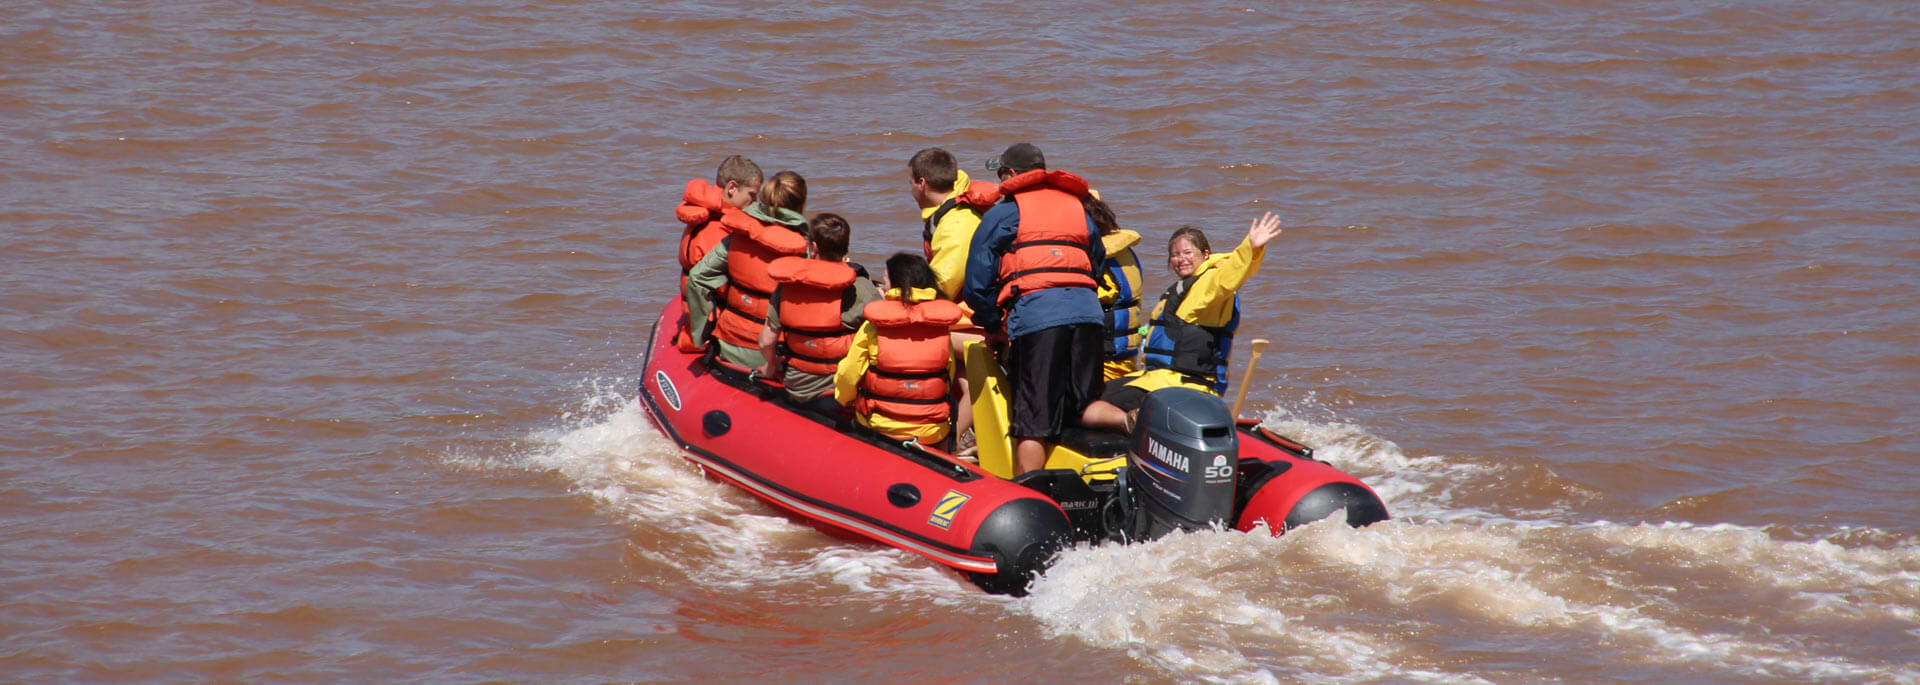 Reisetipp: Tidal Bore Rafting in Nova Scotia